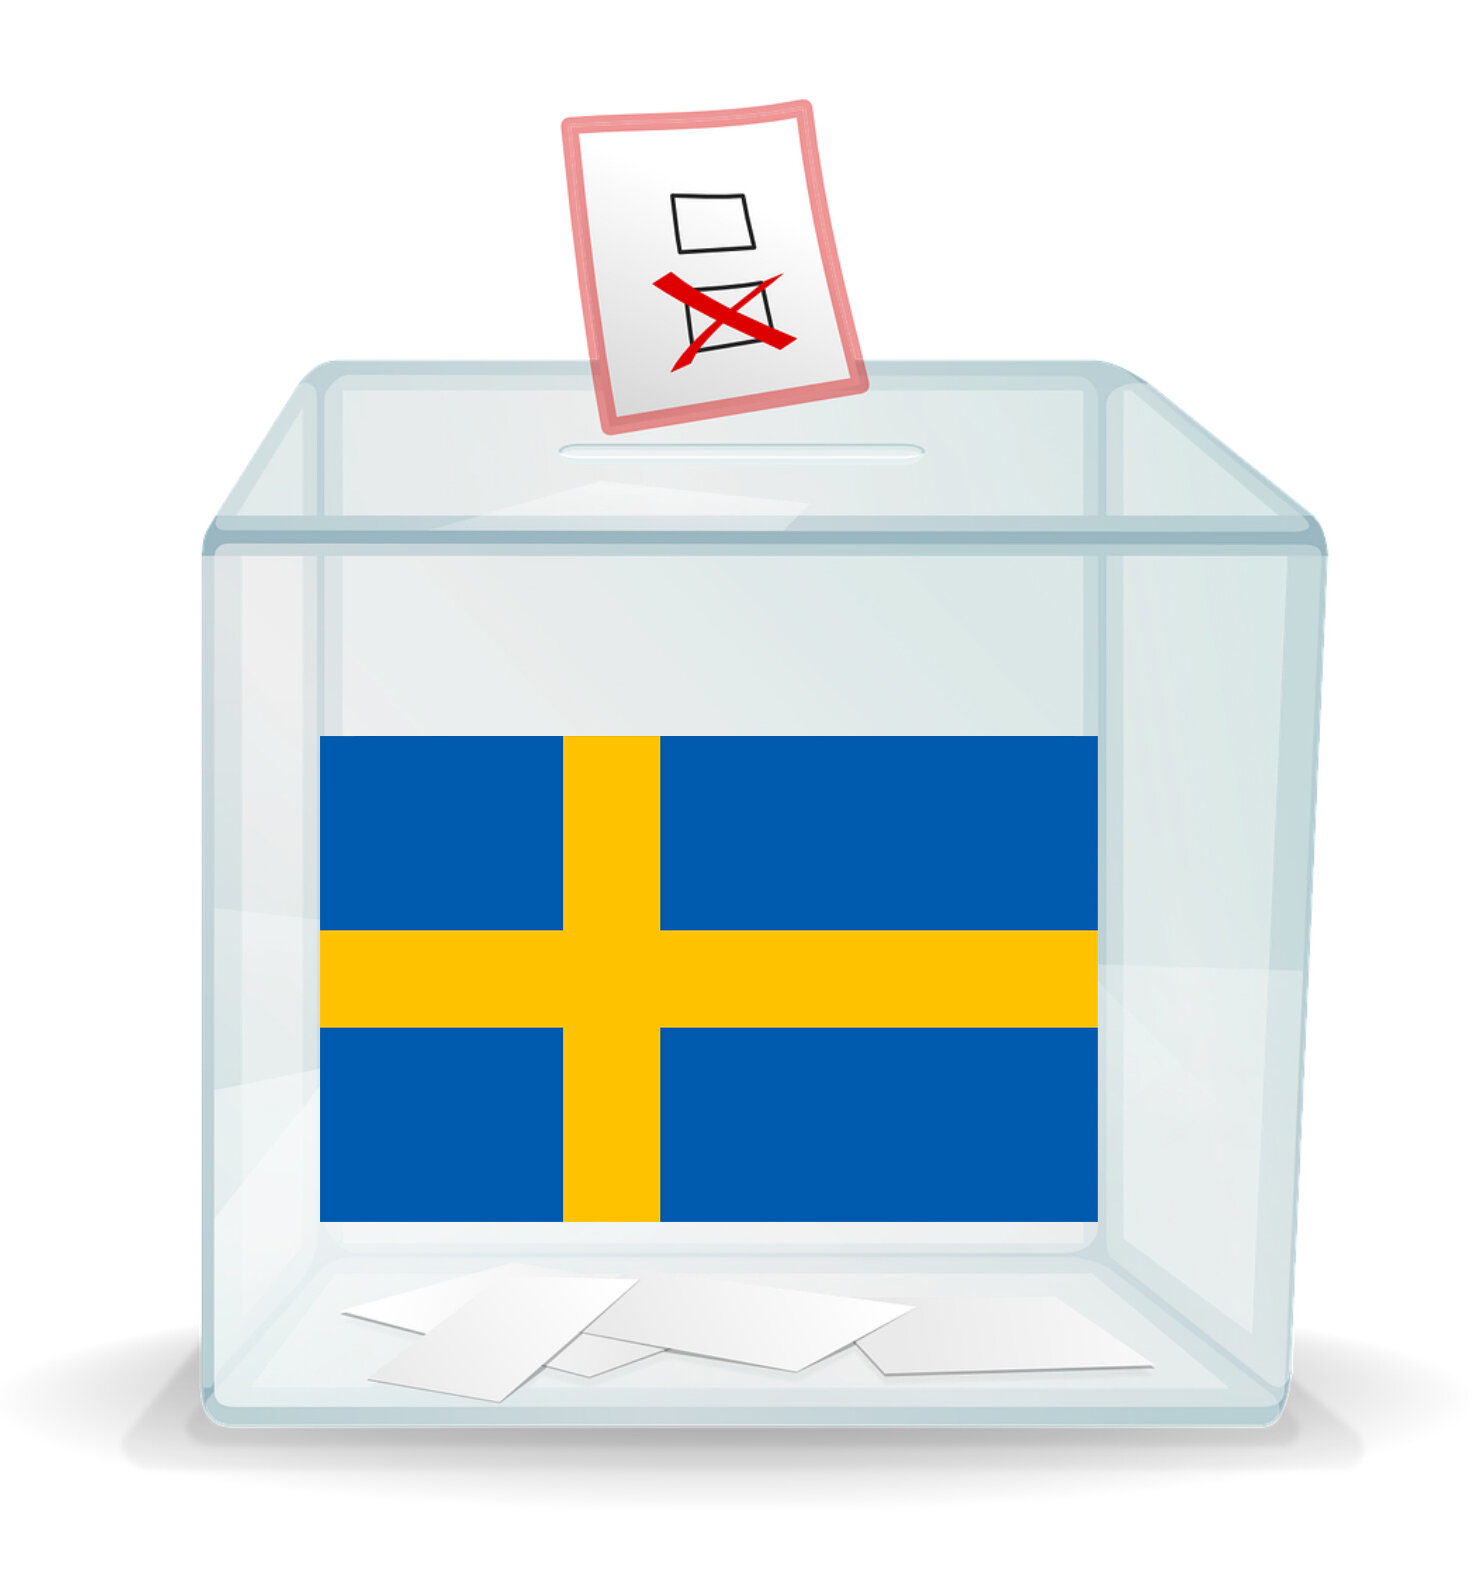 Ballot box with an image of the Swedish flag on the front.